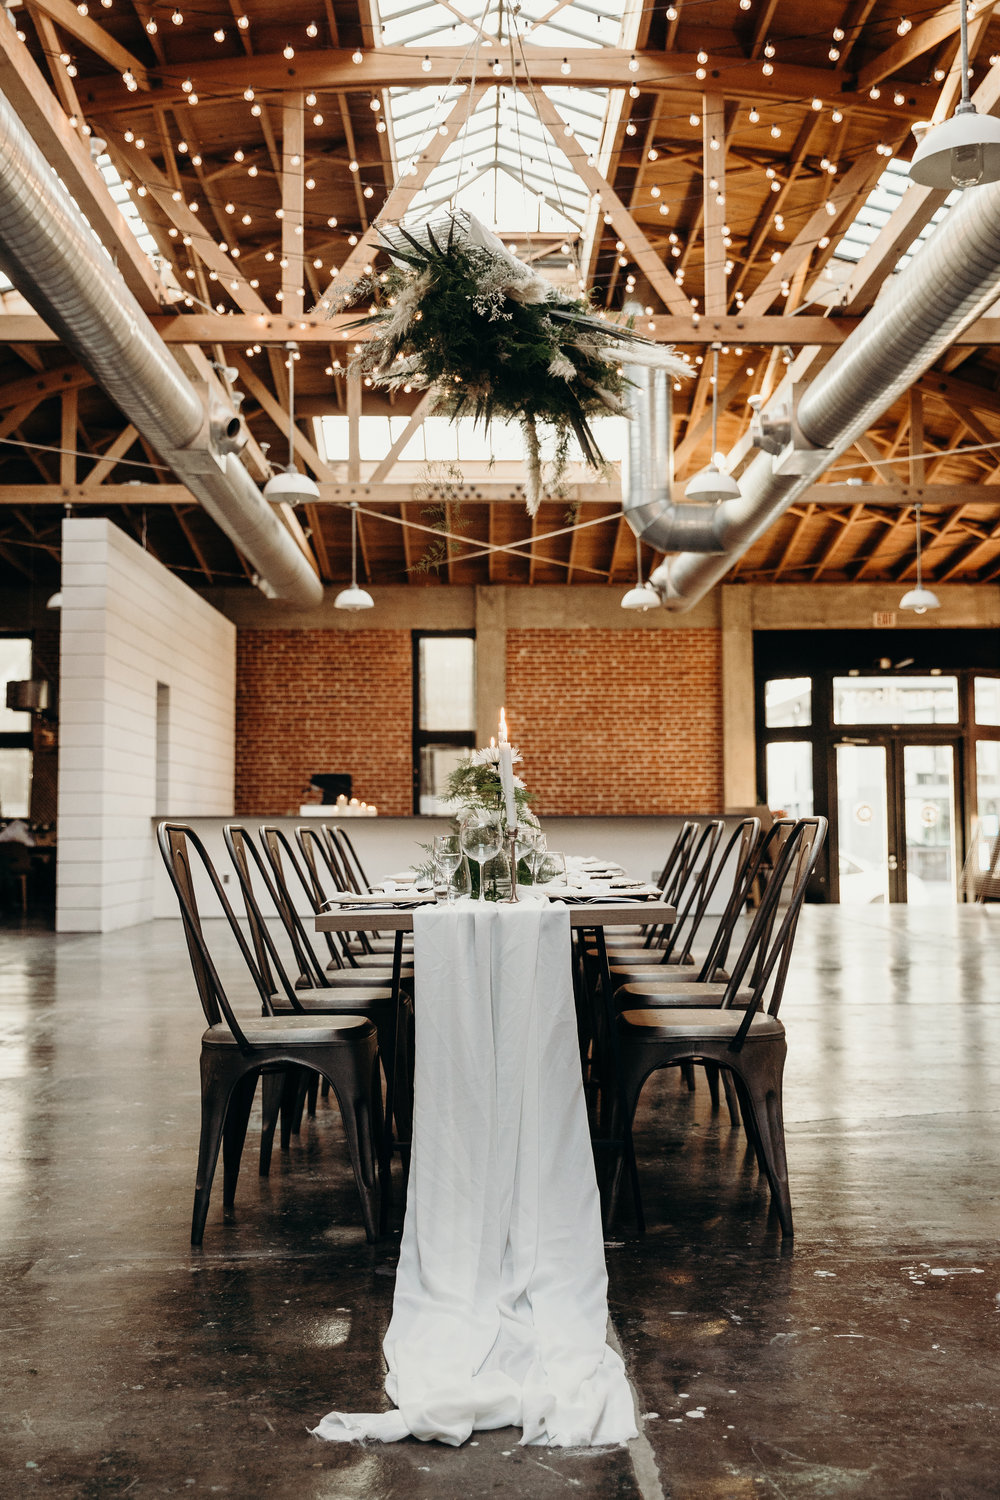 CHIC, MODERN + SLEEK. - A ROMANTIC DINNER WEDDING FOR THE MINIMALIST.